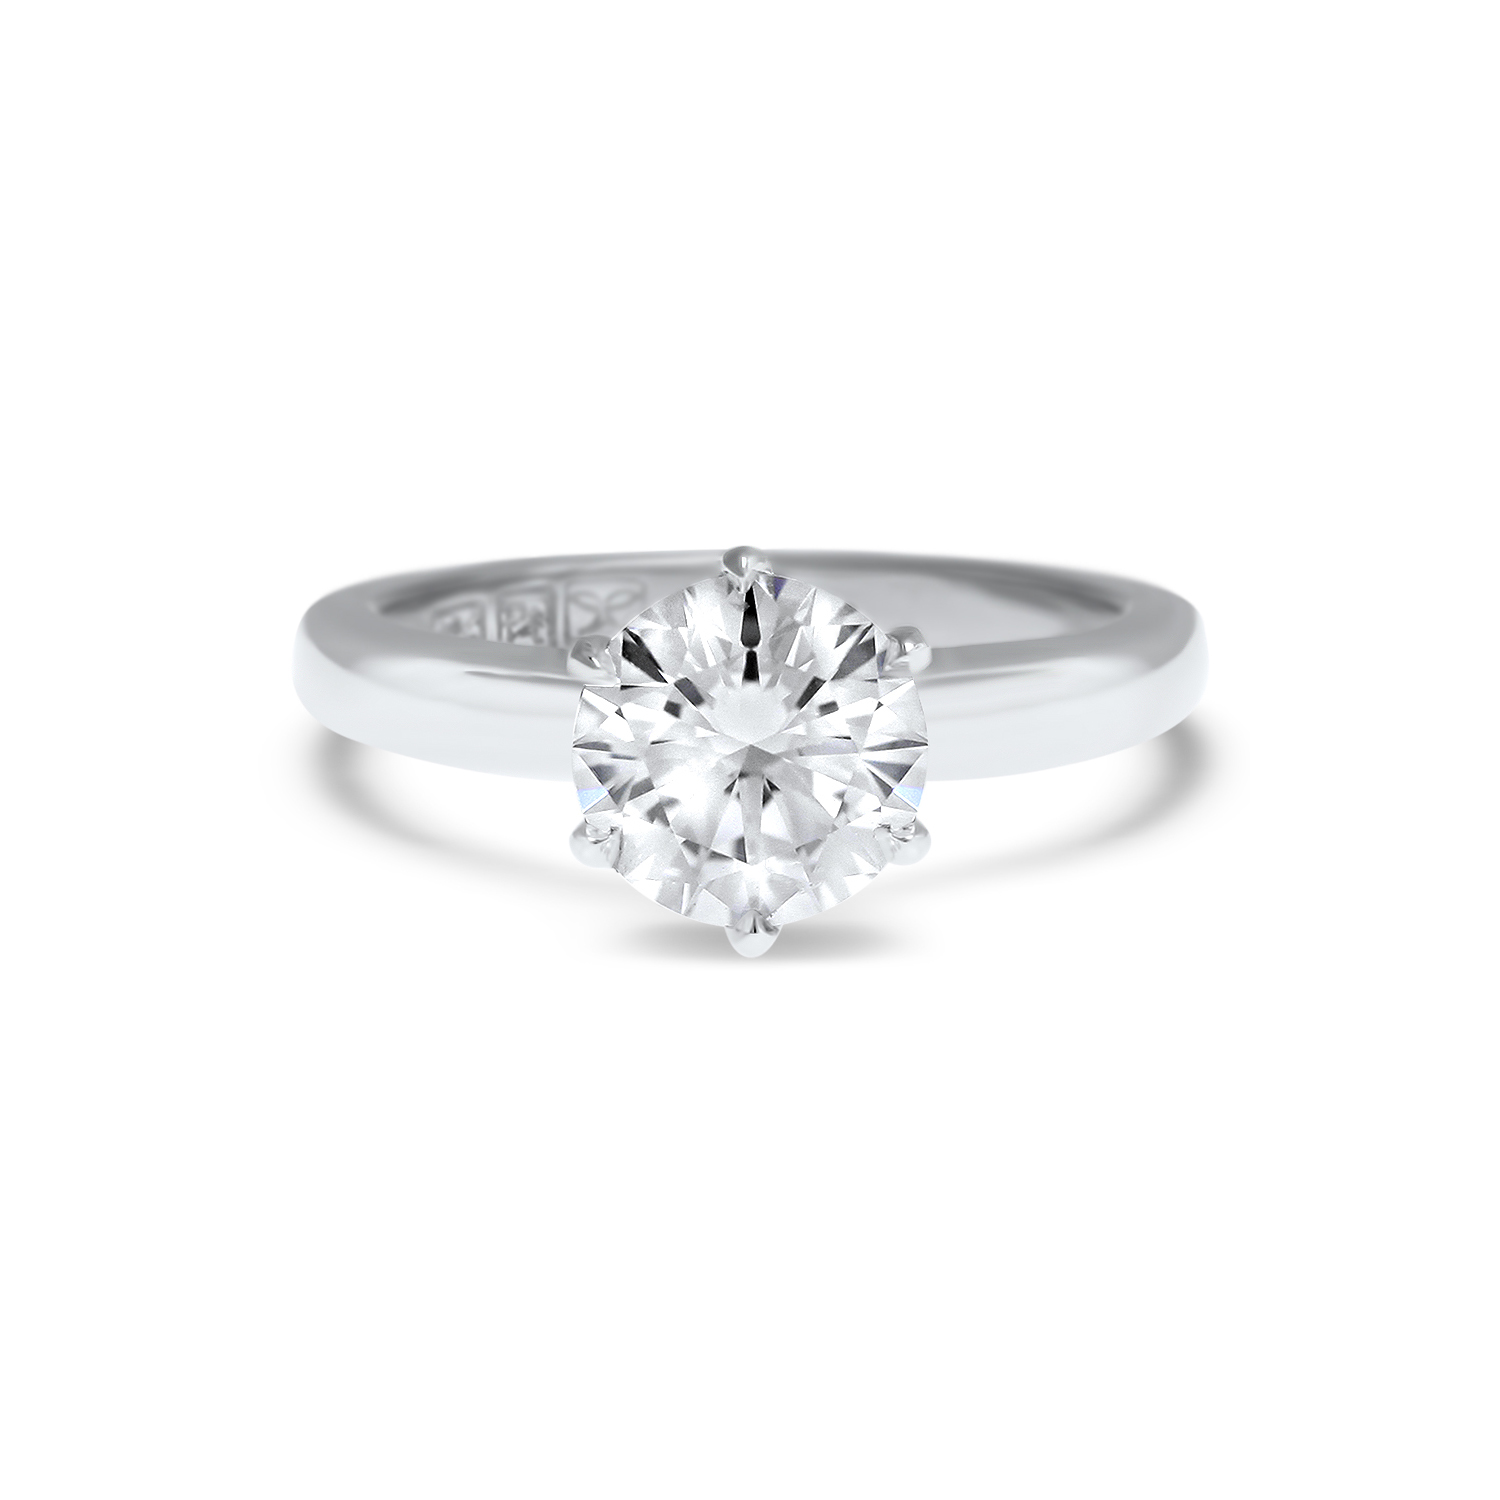 Engagement Rings Round Cut: Round Brilliant Cut Solitaire Engagement Ring